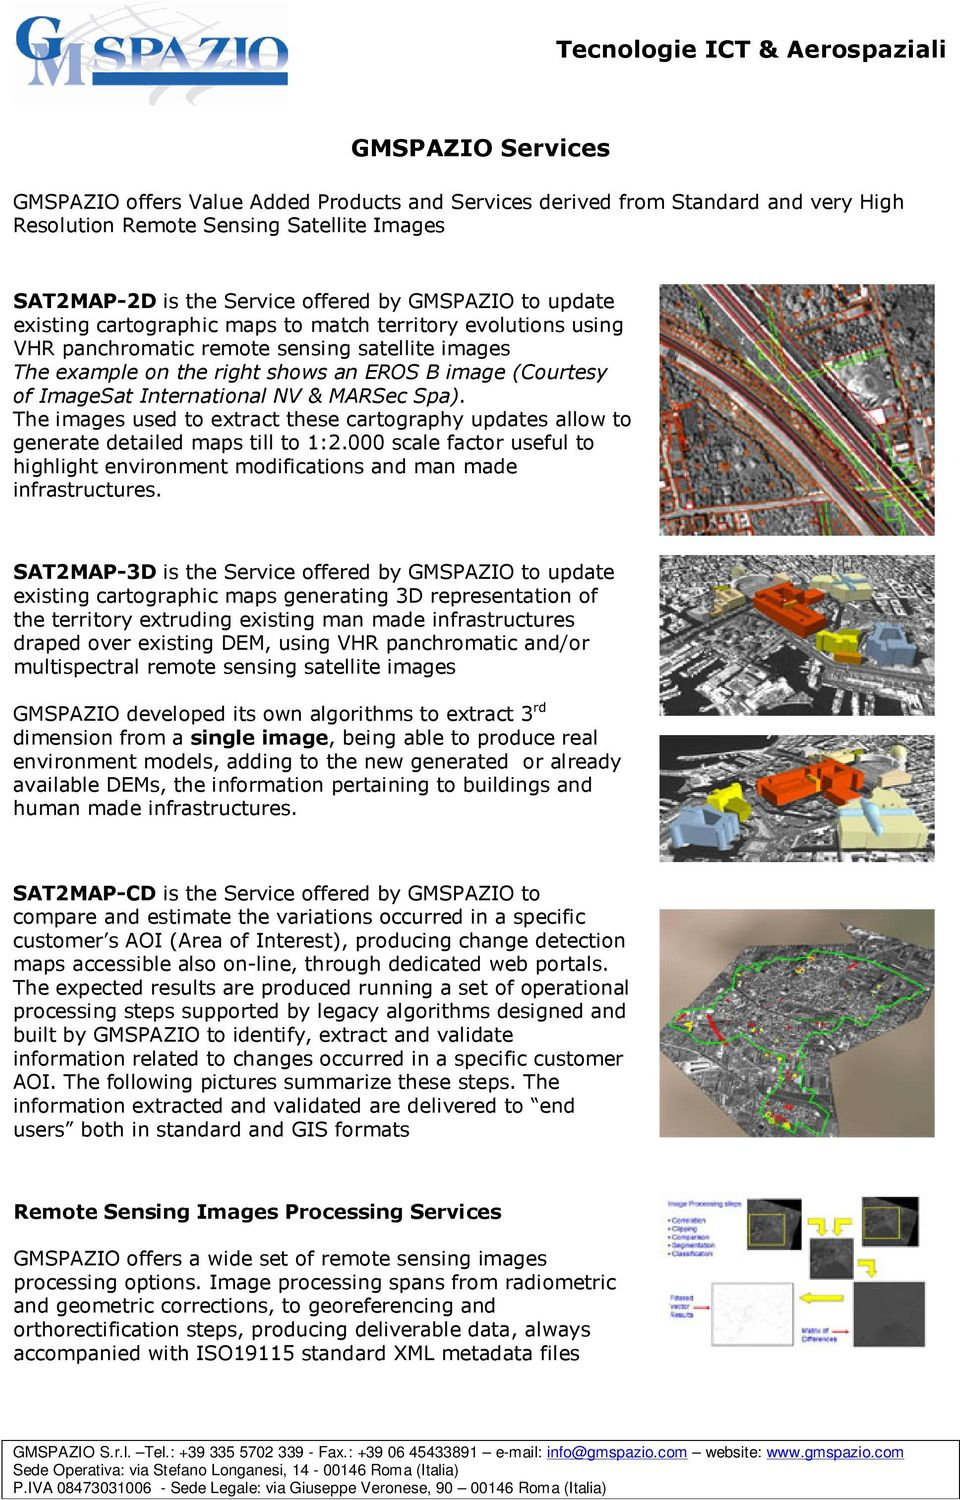 The images used t extract these cartgraphy updates allw t generate detailed maps till t 1:2.000 scale factr useful t highlight envirnment mdificatins and man made infrastructures.